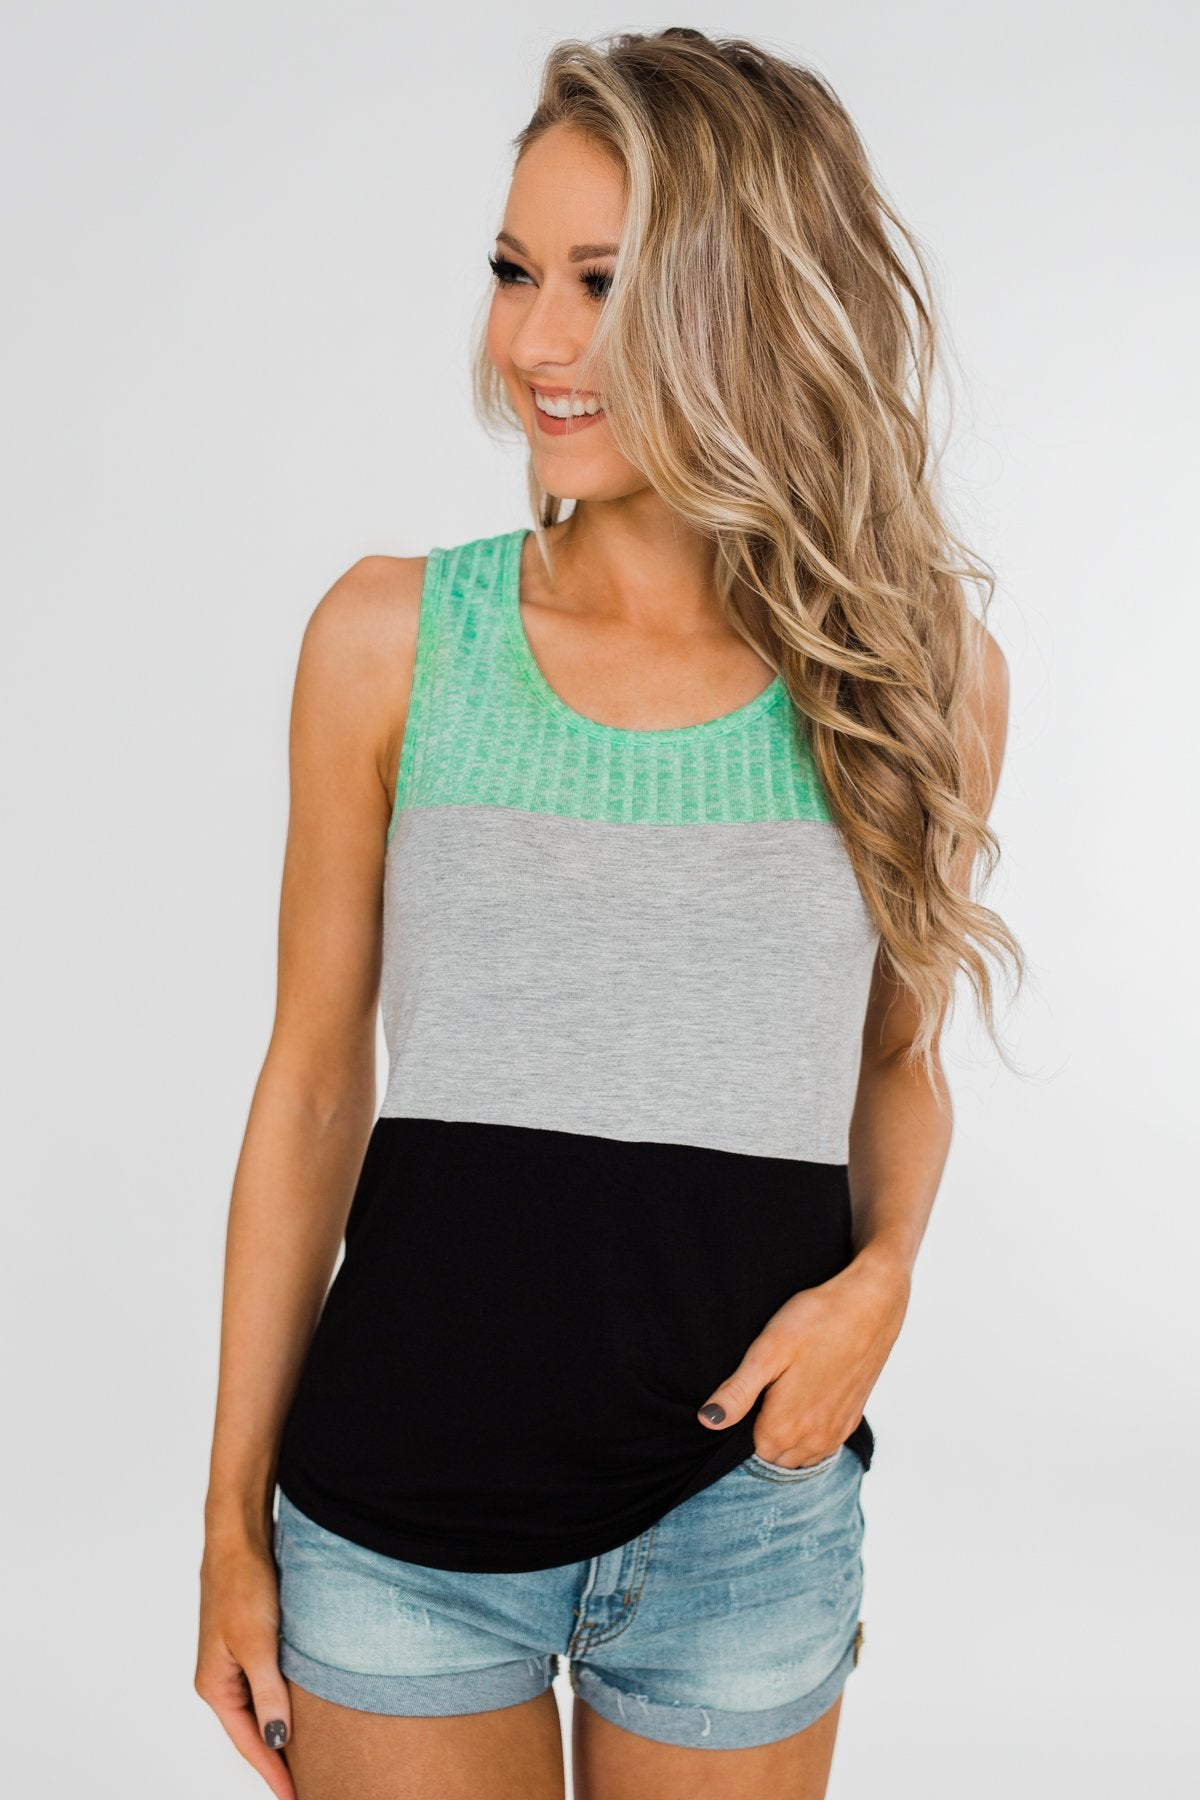 Start Today Color Block Tank Top- Mint